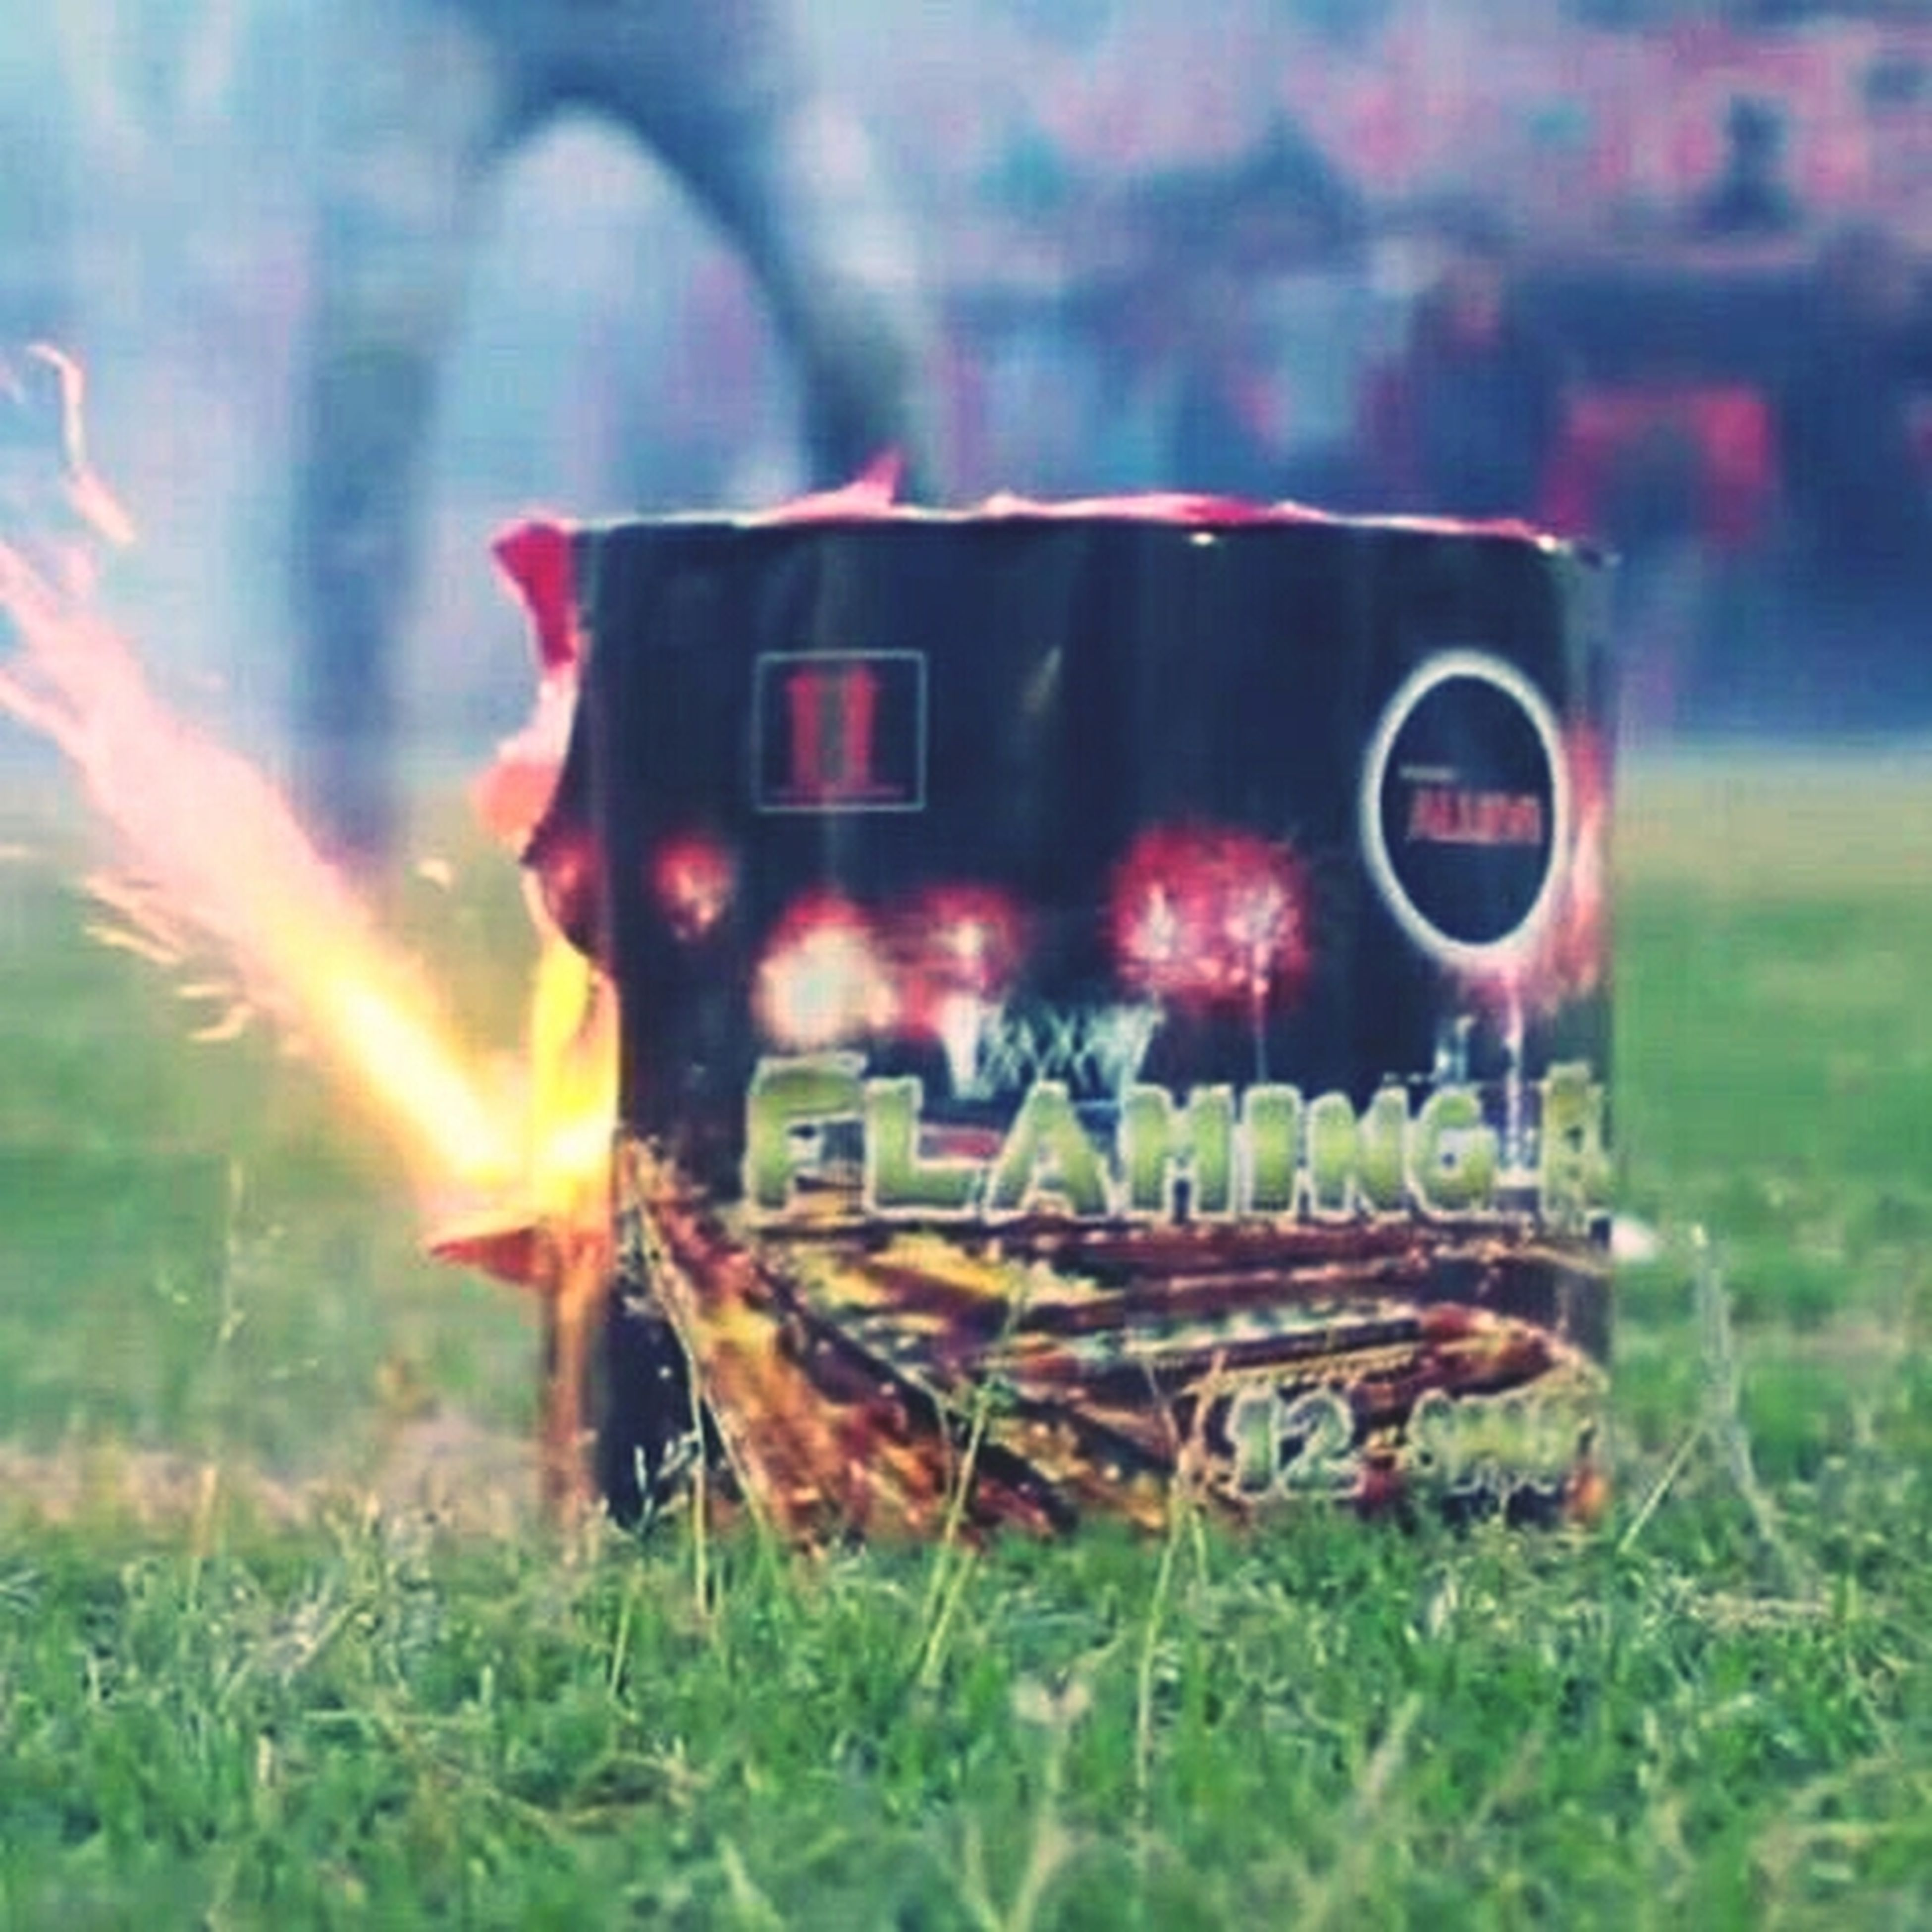 grass, field, land vehicle, burning, abandoned, mode of transport, transportation, car, flame, fire - natural phenomenon, close-up, grassy, obsolete, damaged, selective focus, focus on foreground, tractor, outdoors, heat - temperature, no people